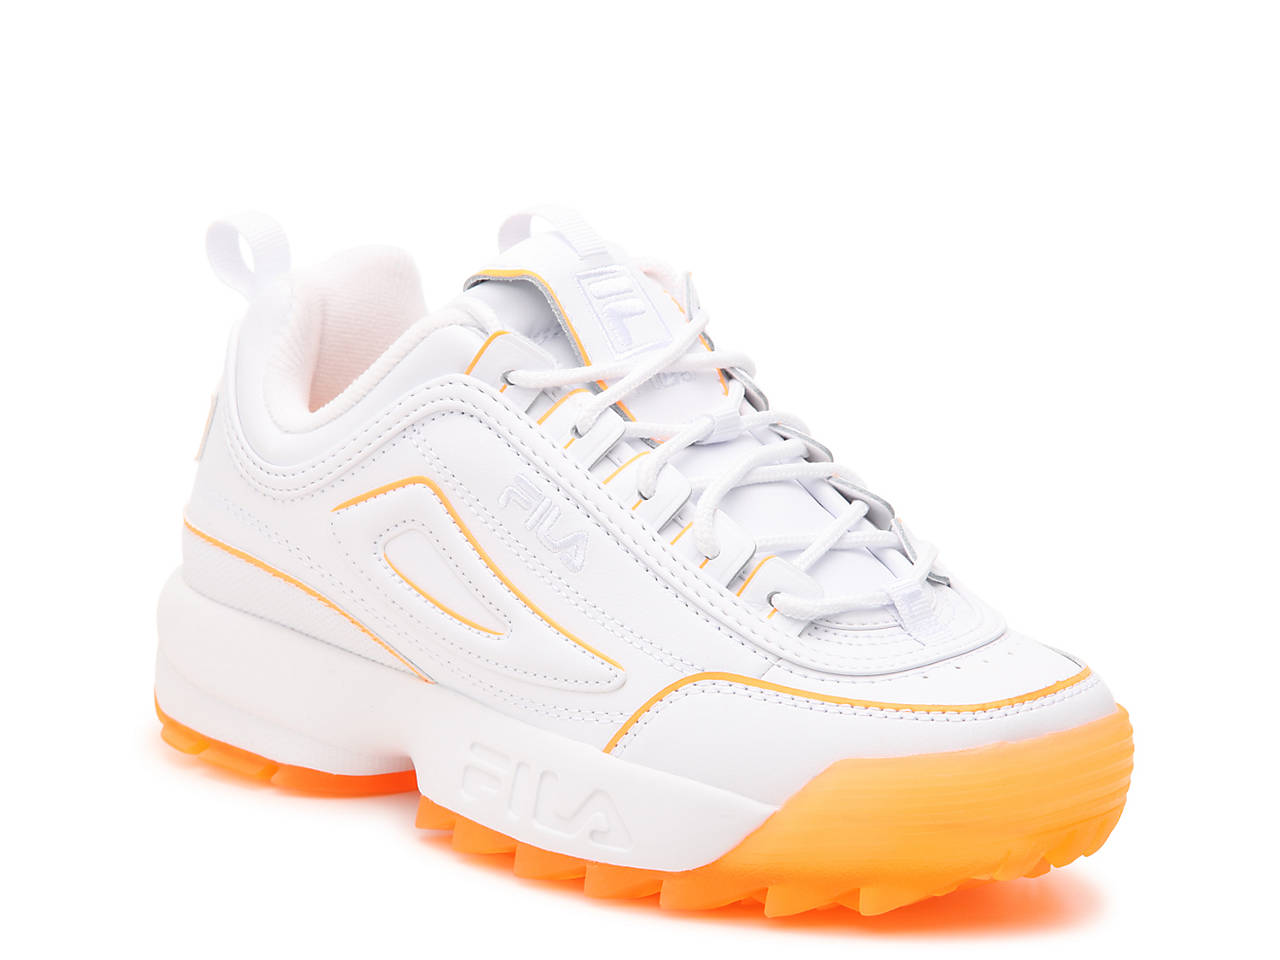 variety of designs and colors get new new photos Fila Disruptor II Ice Sneaker - Women's Women's Shoes | DSW